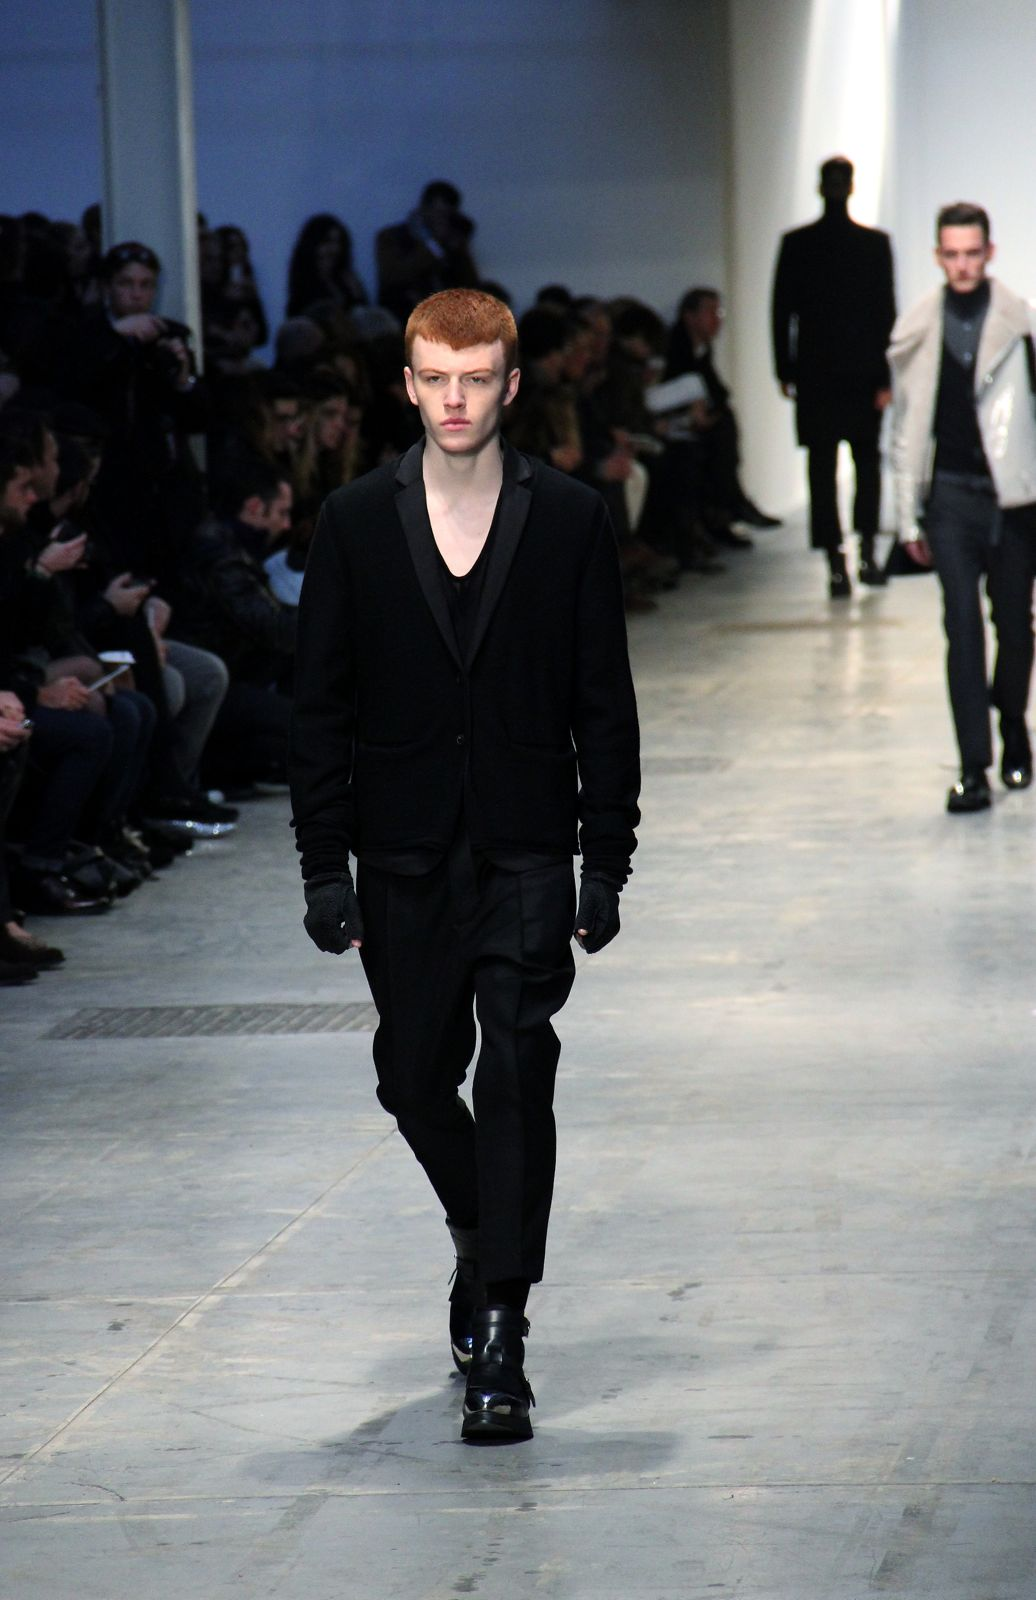 Catwalk Costume National Homme Fall Winter 2012-13 Men Fashion Show